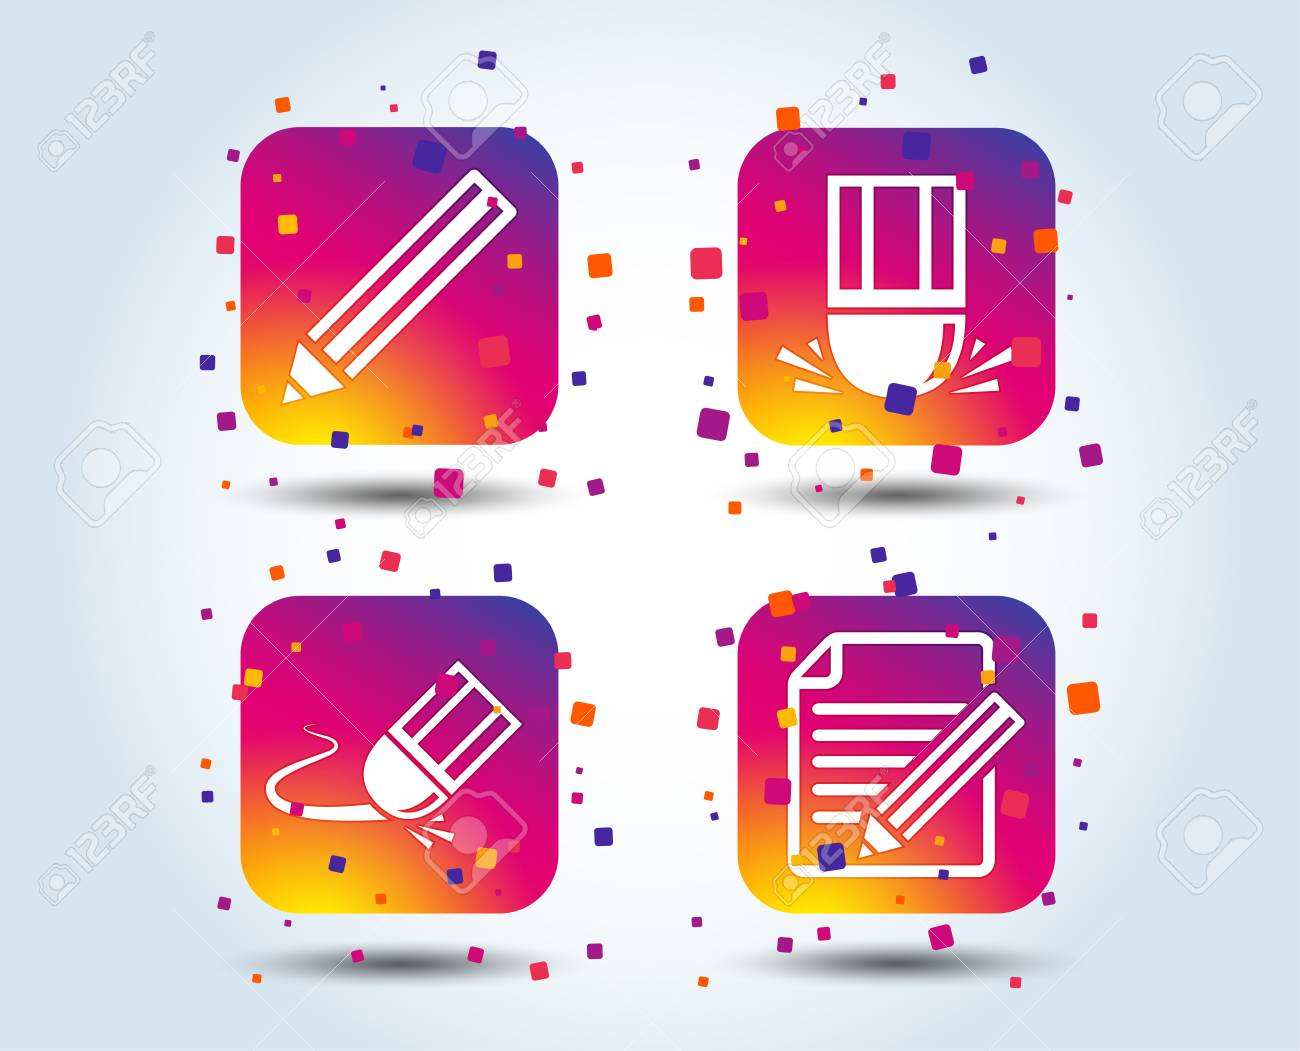 Pencil icon  Edit document file  Eraser sign  Correct drawing